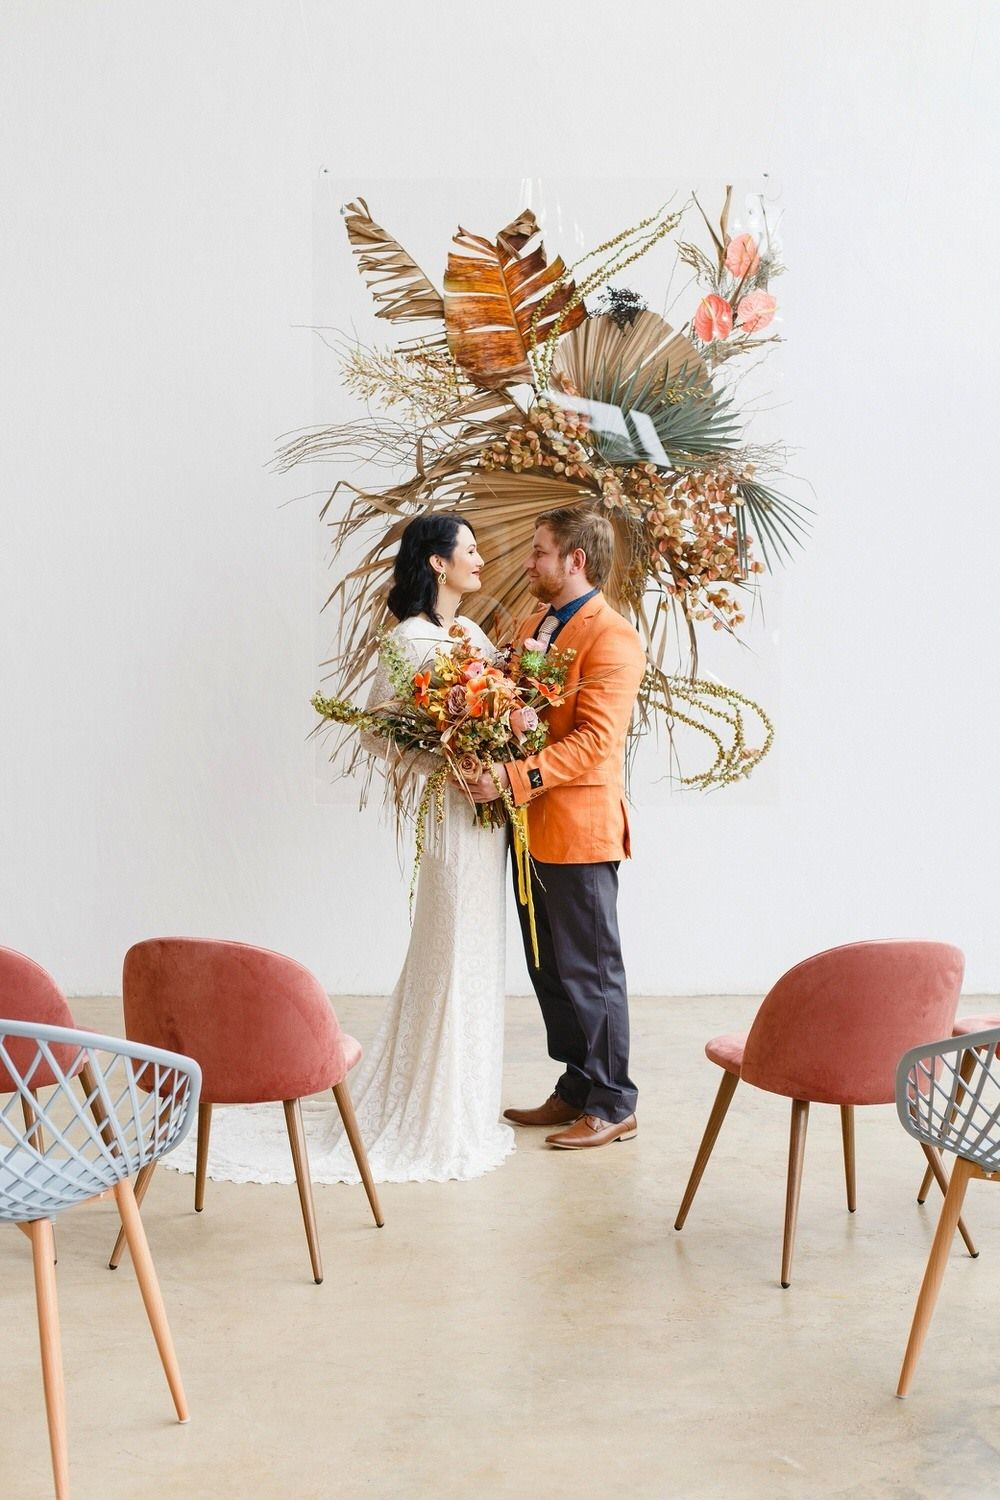 Tropics & Tulips Summer Wedding Inspiration from South